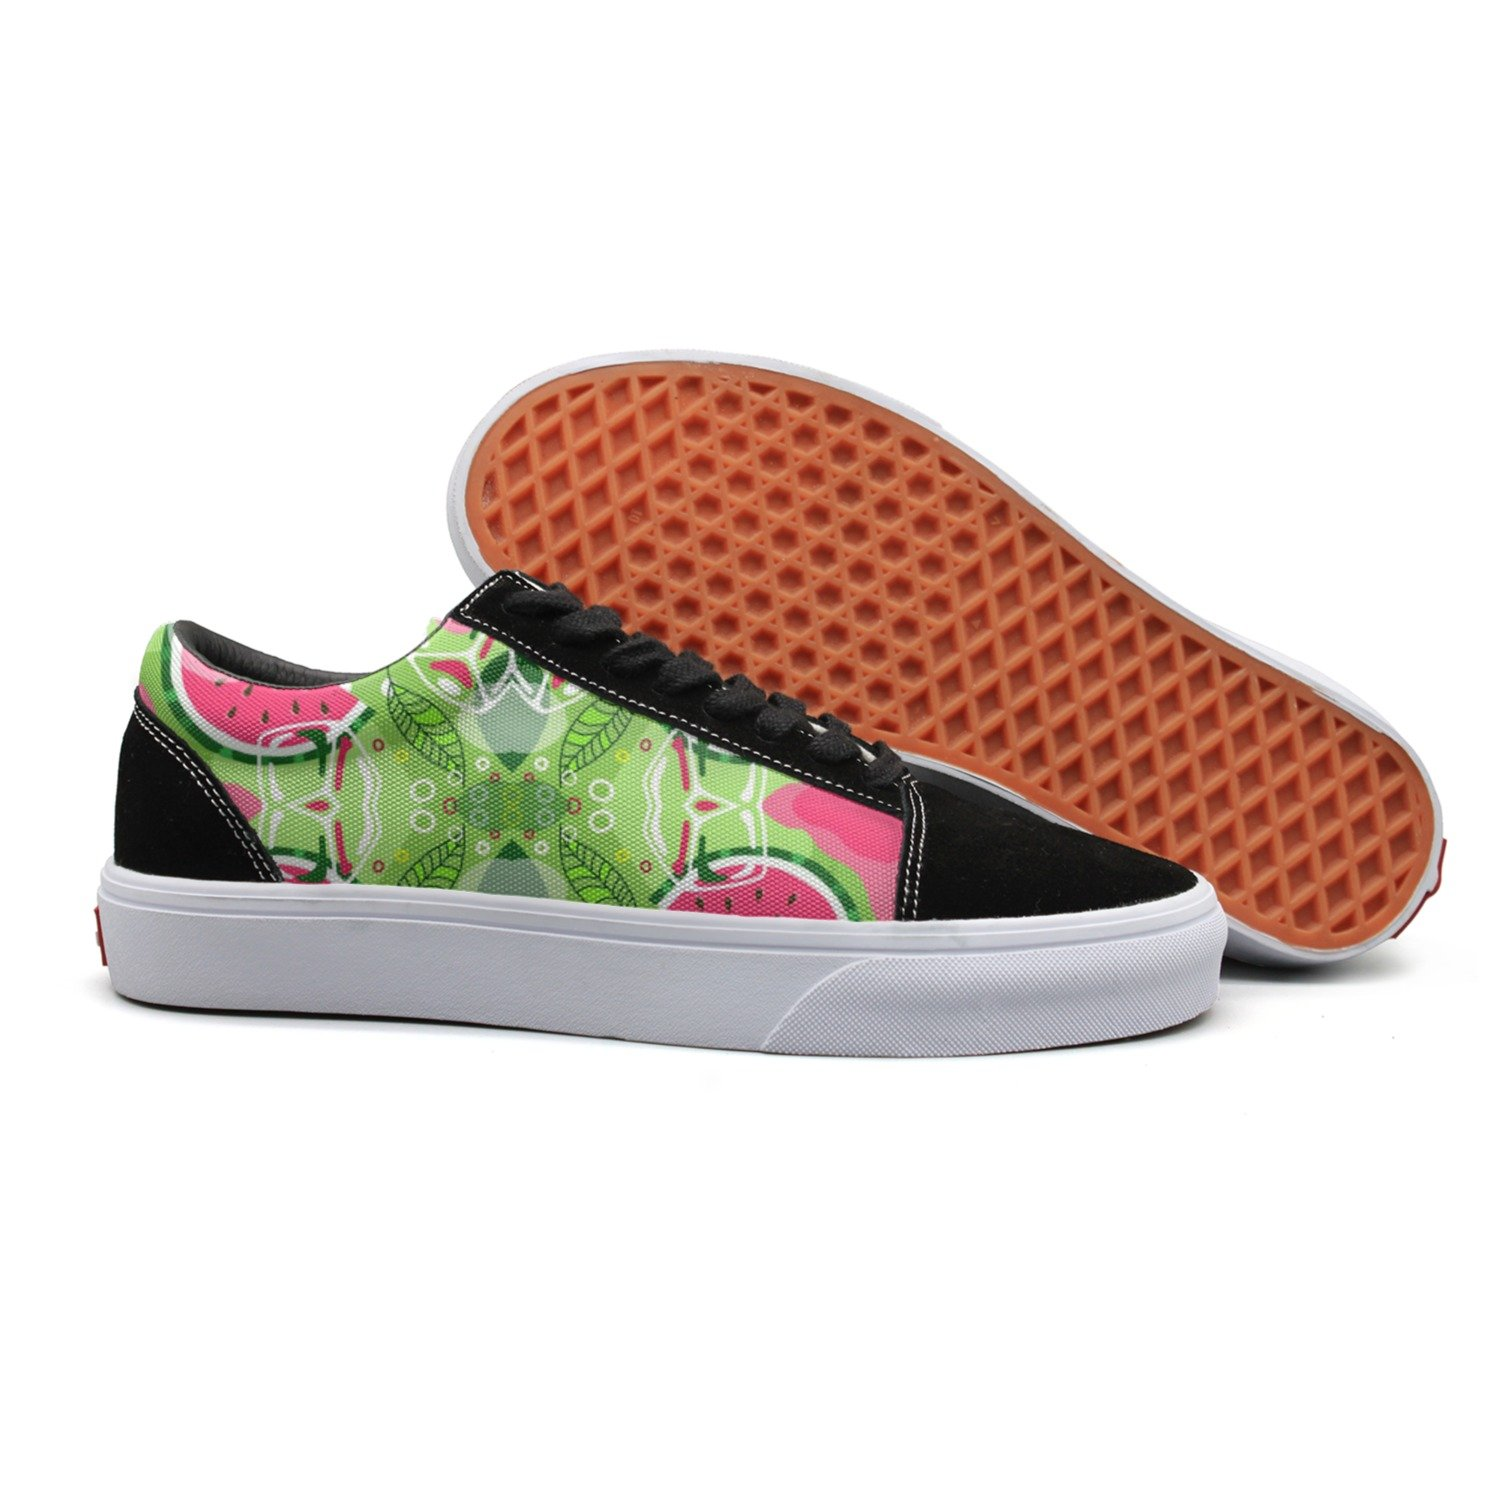 FashioSneaker Comfort Footwear For Women Summer Ice Watermelon Skateboard Shoes